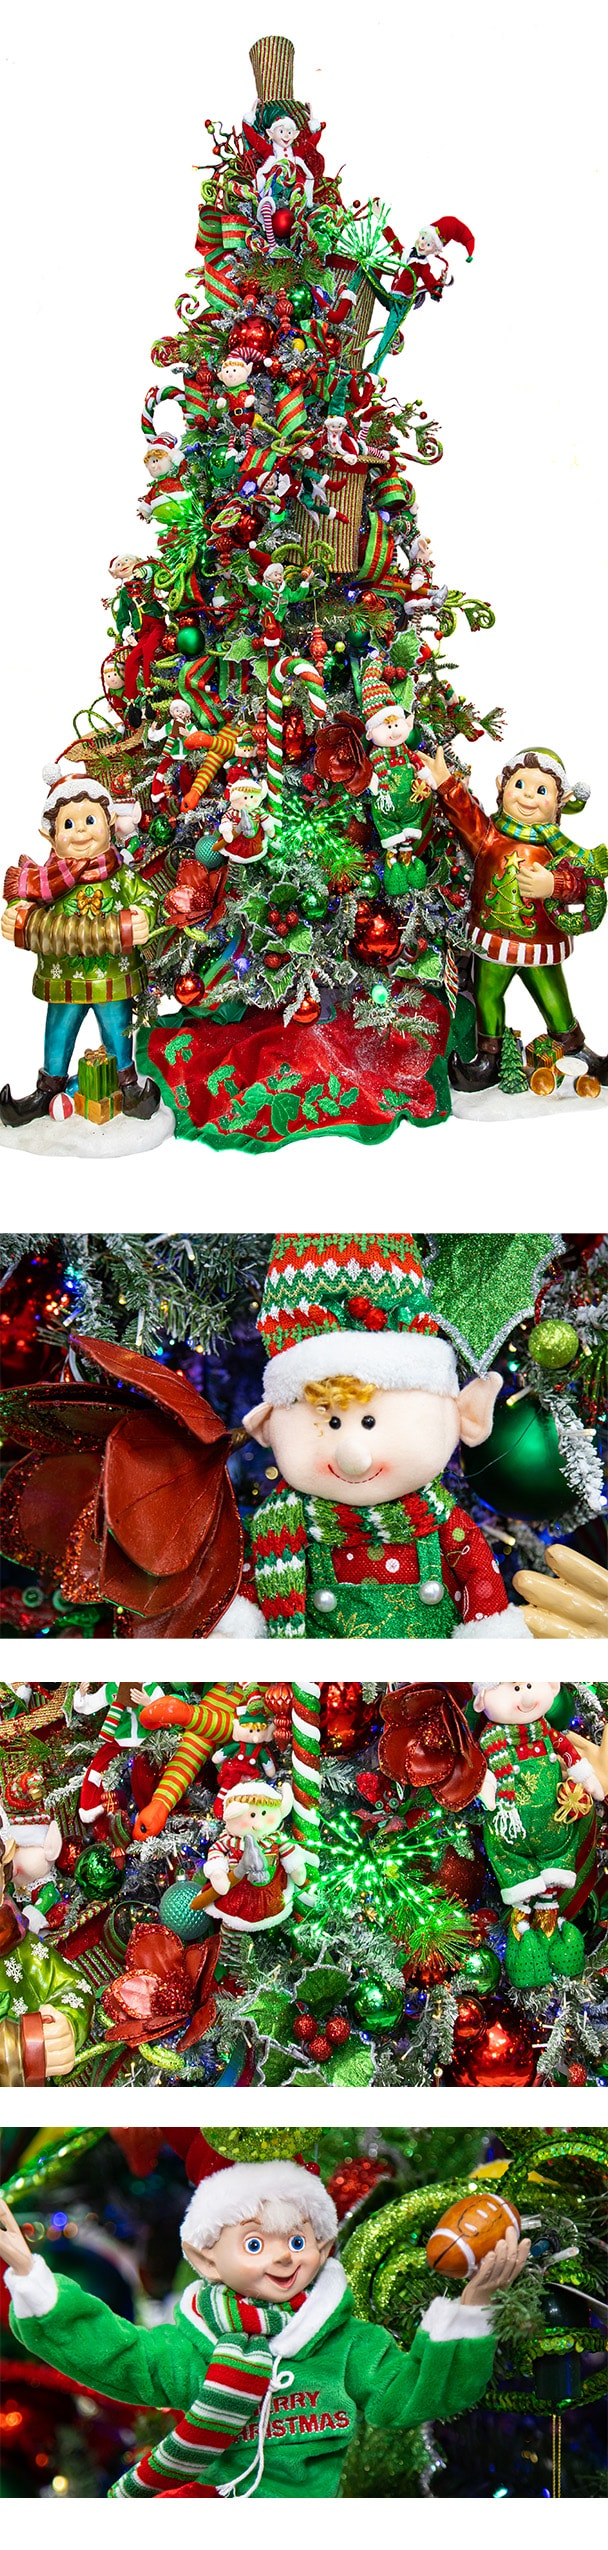 Razzle Dazzle christmas tree and closeup photos of ornaments